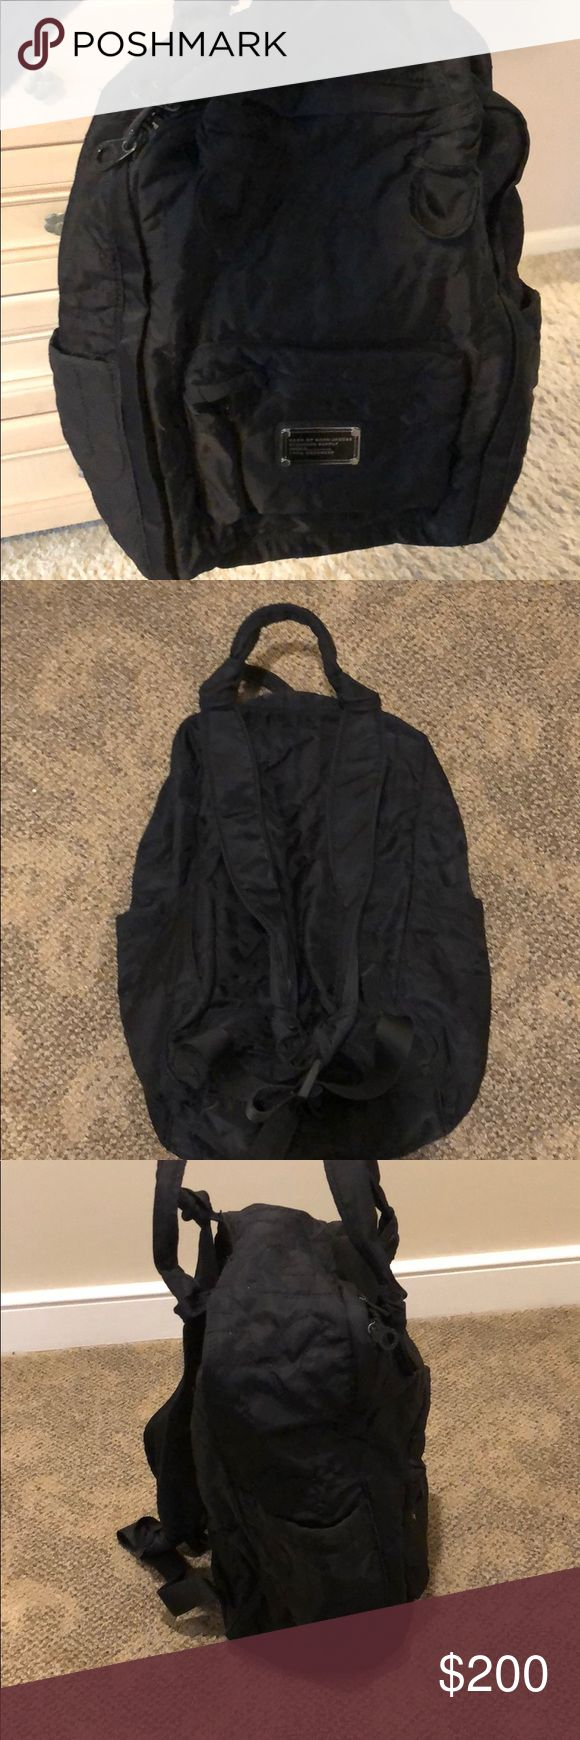 Marc Jacobs black stylish backpack Lightly used Marc Jacobs backpack. Lots of space and two side pouches. Black subtle stitching with the brand name. No dirt or pulls. Marc Jacobs Bags Backpacks